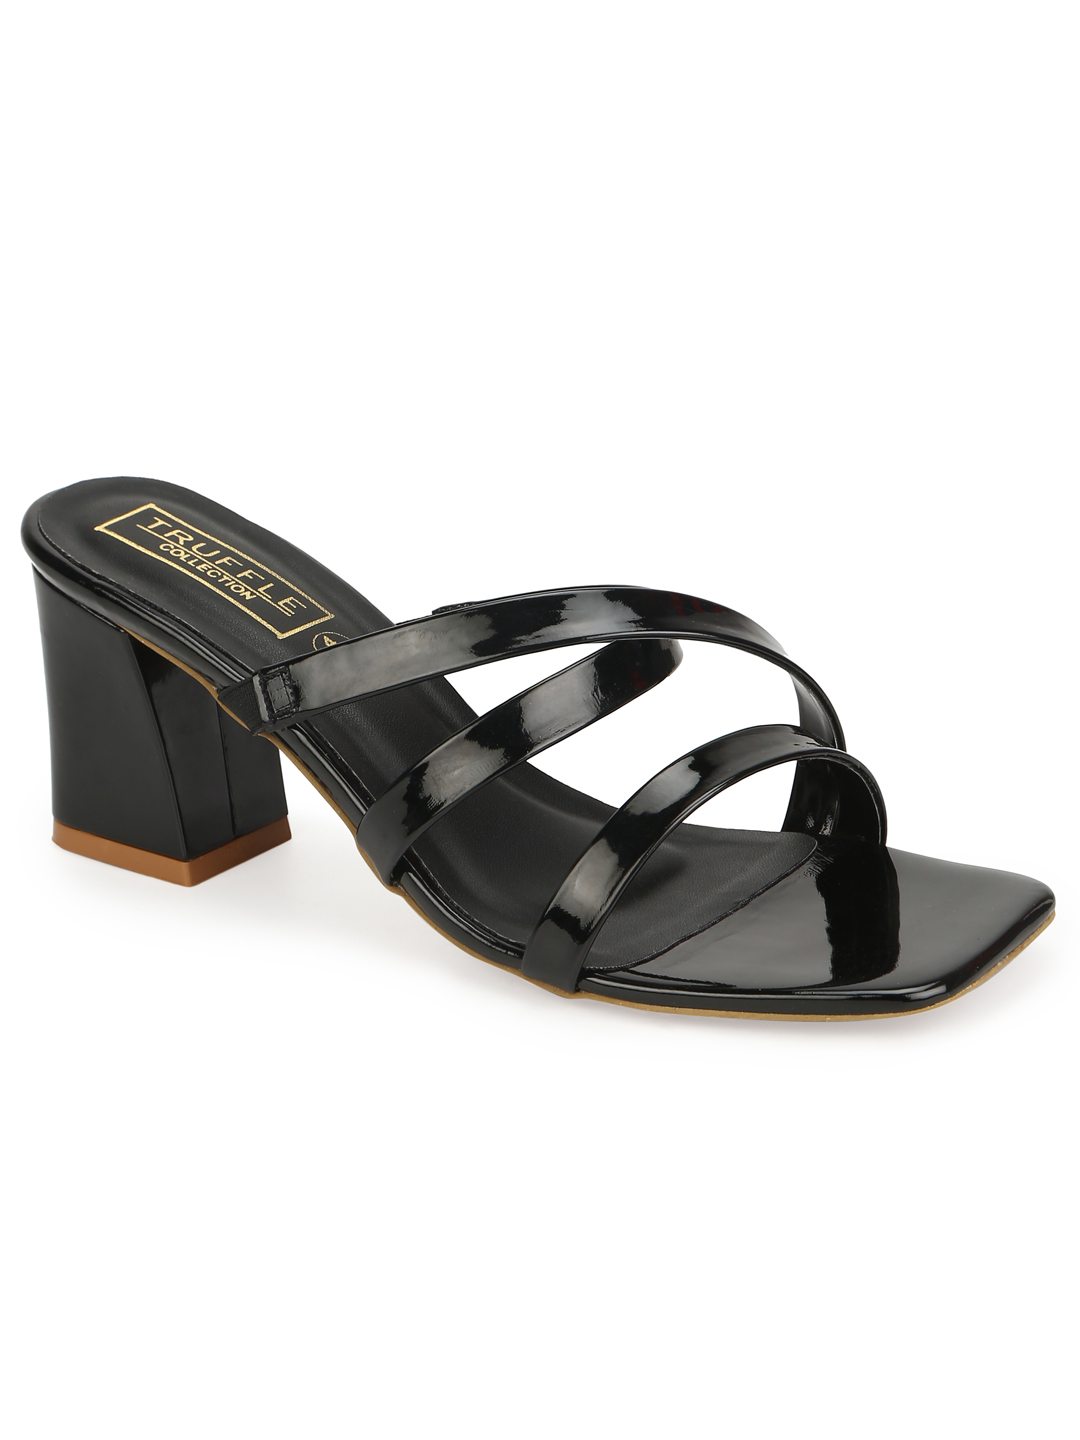 Truffle Collection | Truffle Collection Black Patent Strappy Sandals